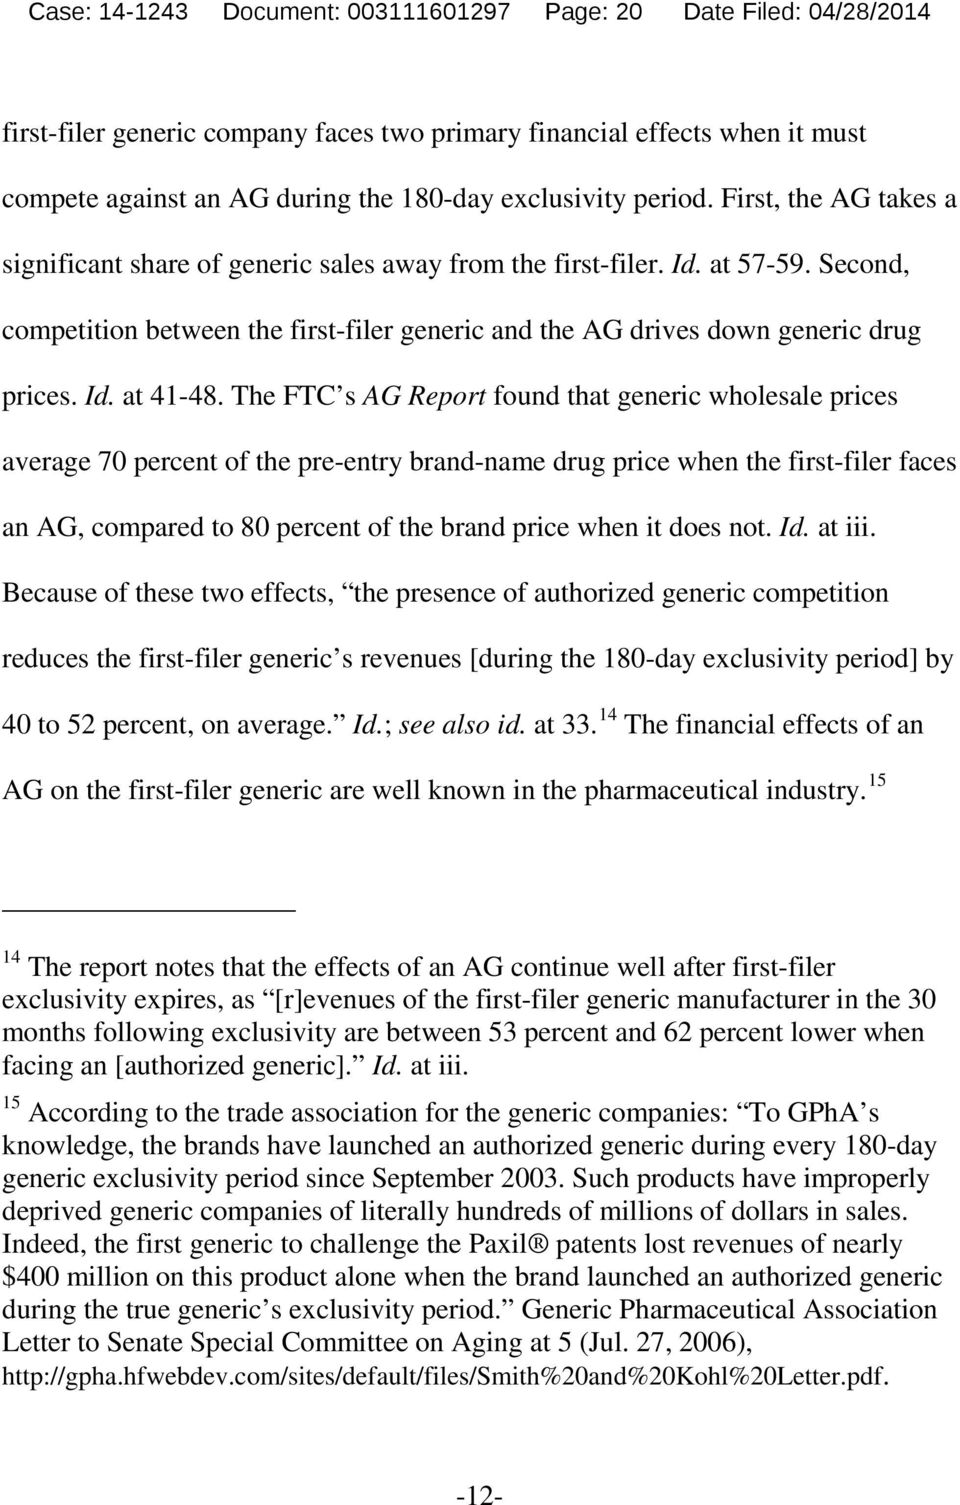 Second, competition between the first-filer generic and the AG drives down generic drug prices. Id. at 41-48.